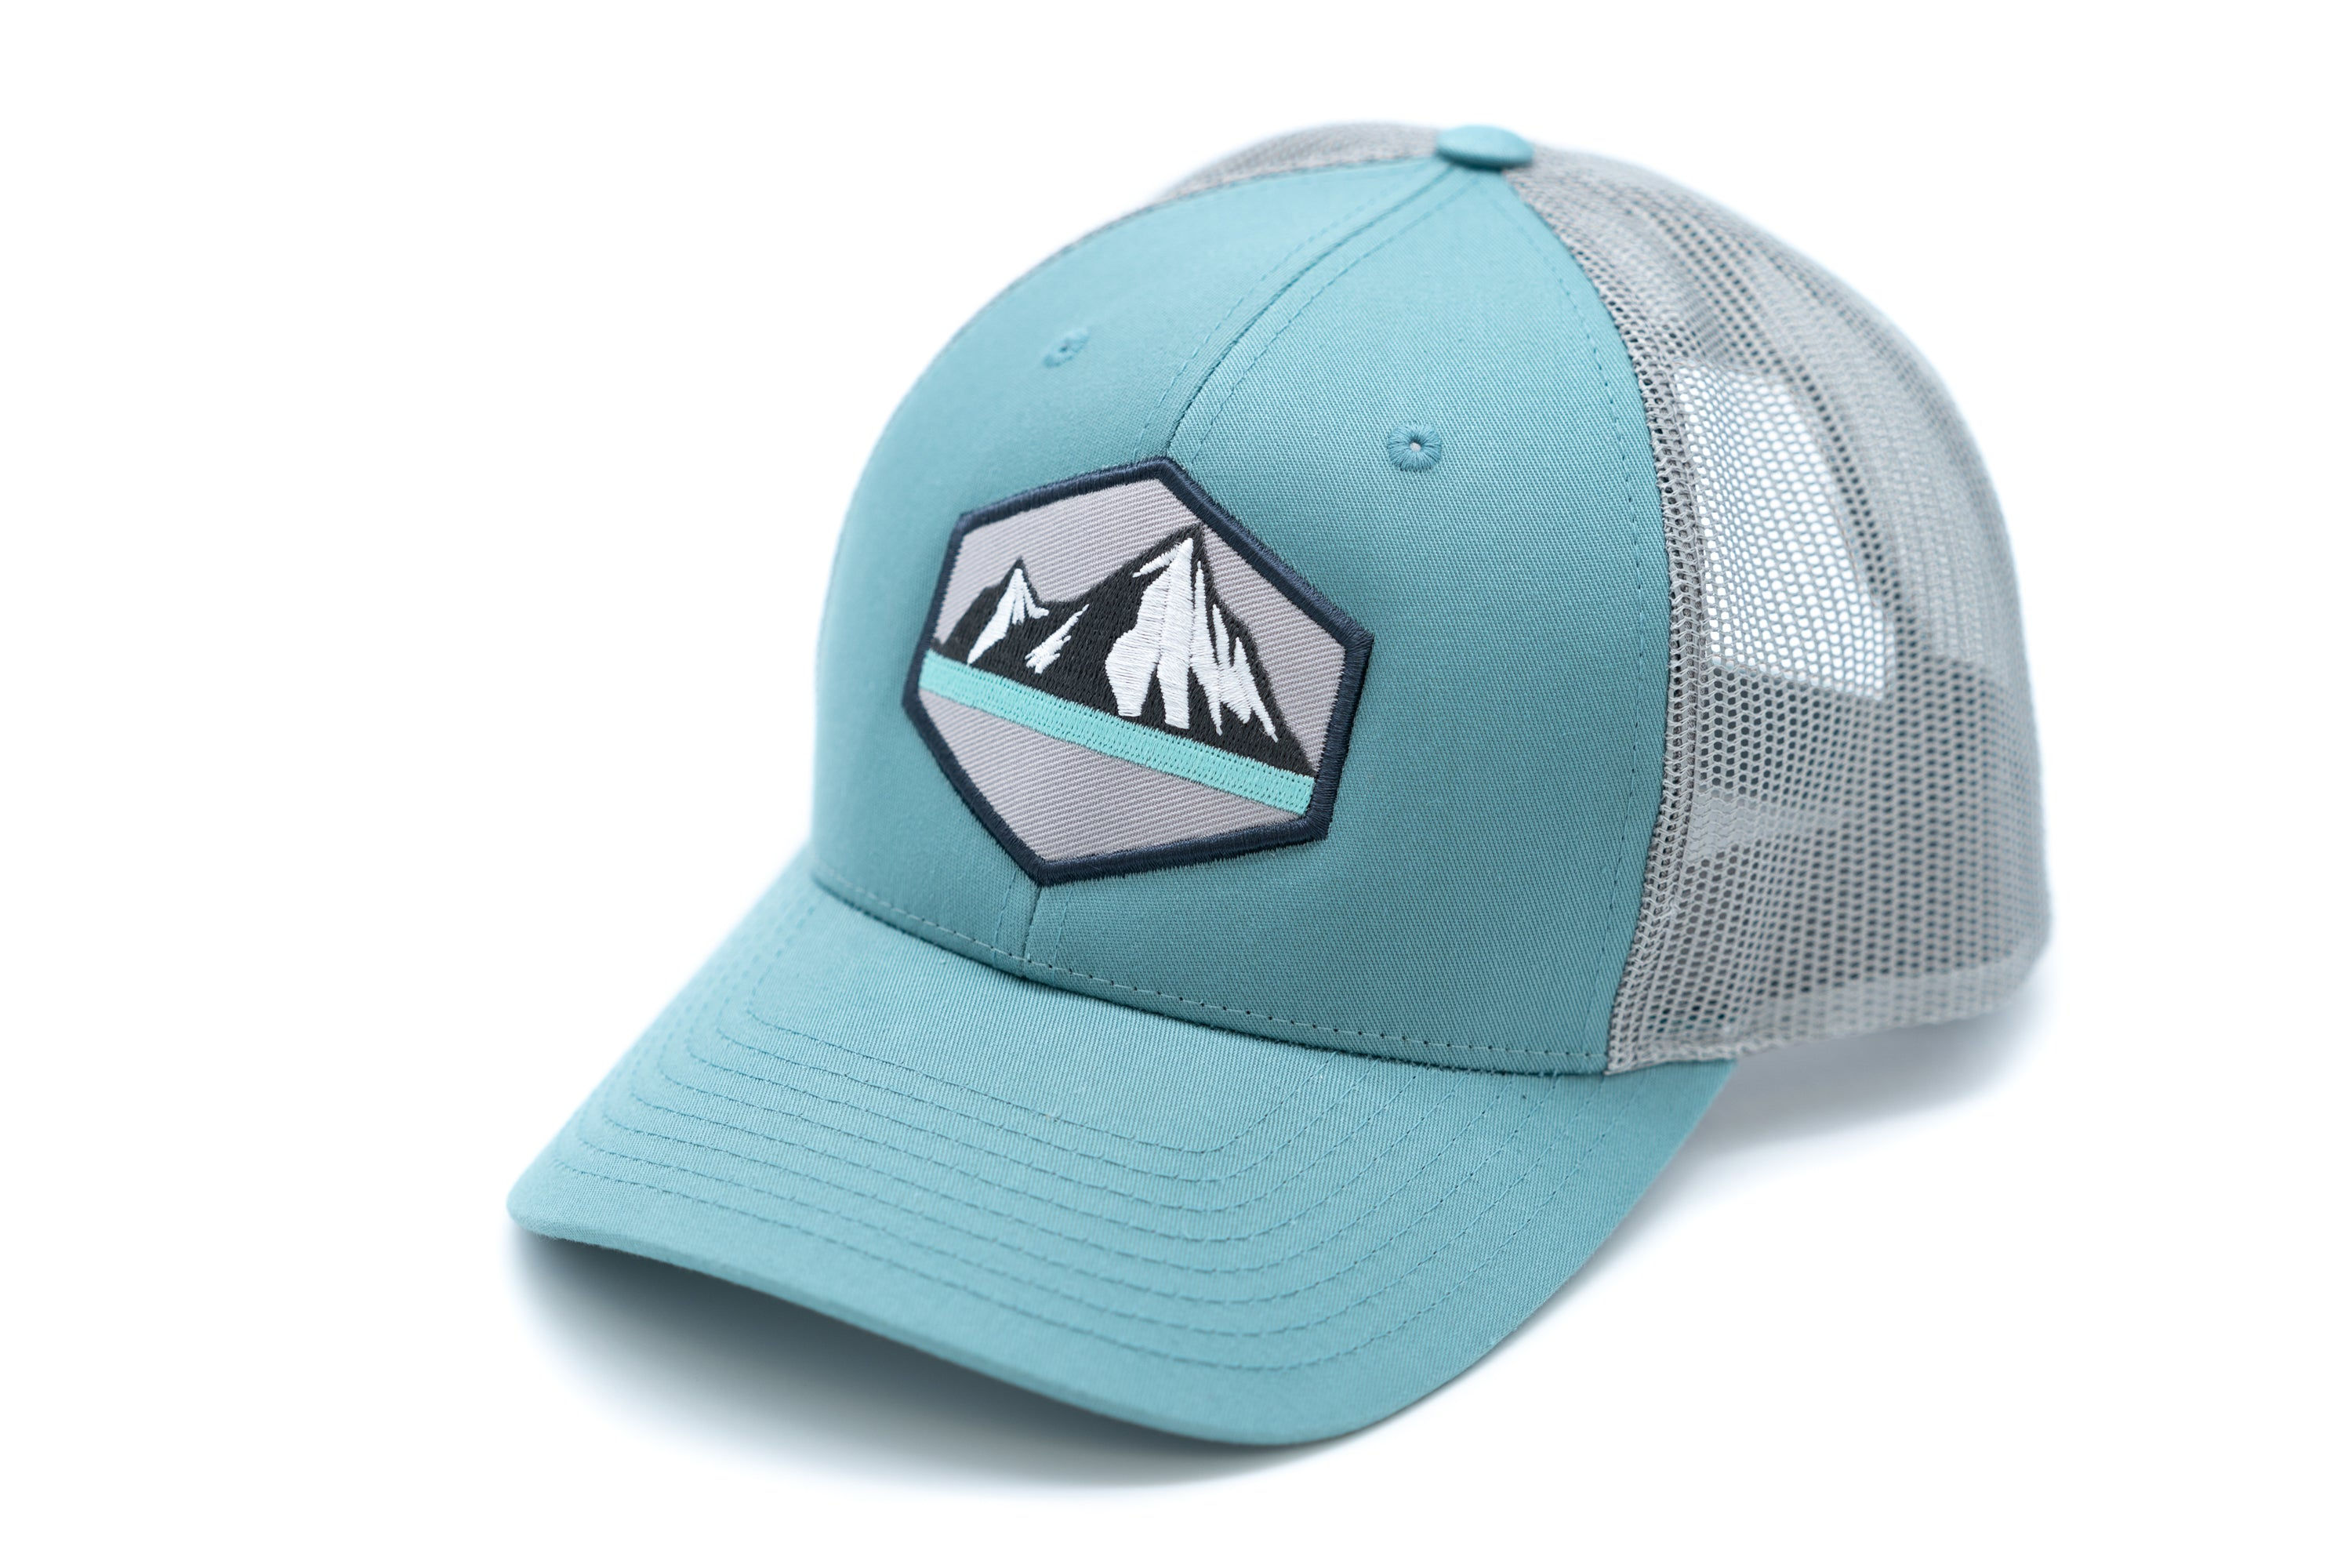 Low Profile Snapback Trucker Hat With Embroidered Mount Patch - Aqua Brim and Front Panel With Grey Mesh Back